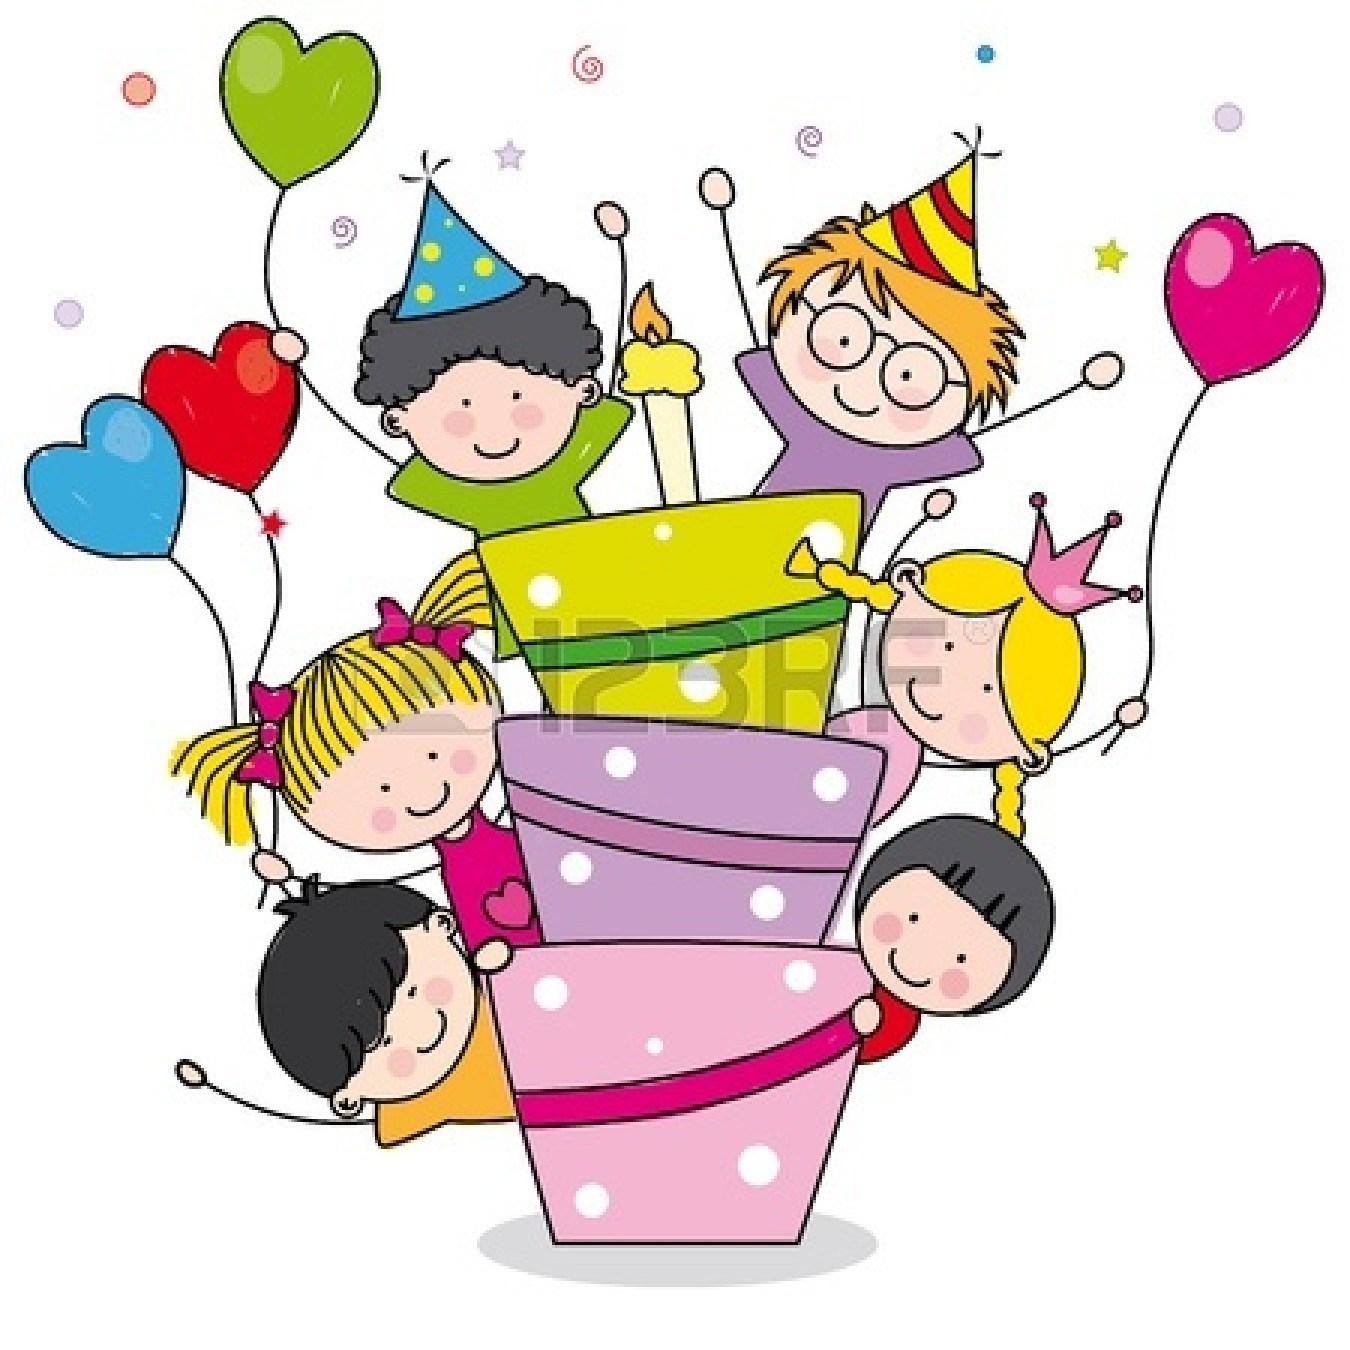 Surprise birthday party clipart 4 » Clipart Portal.